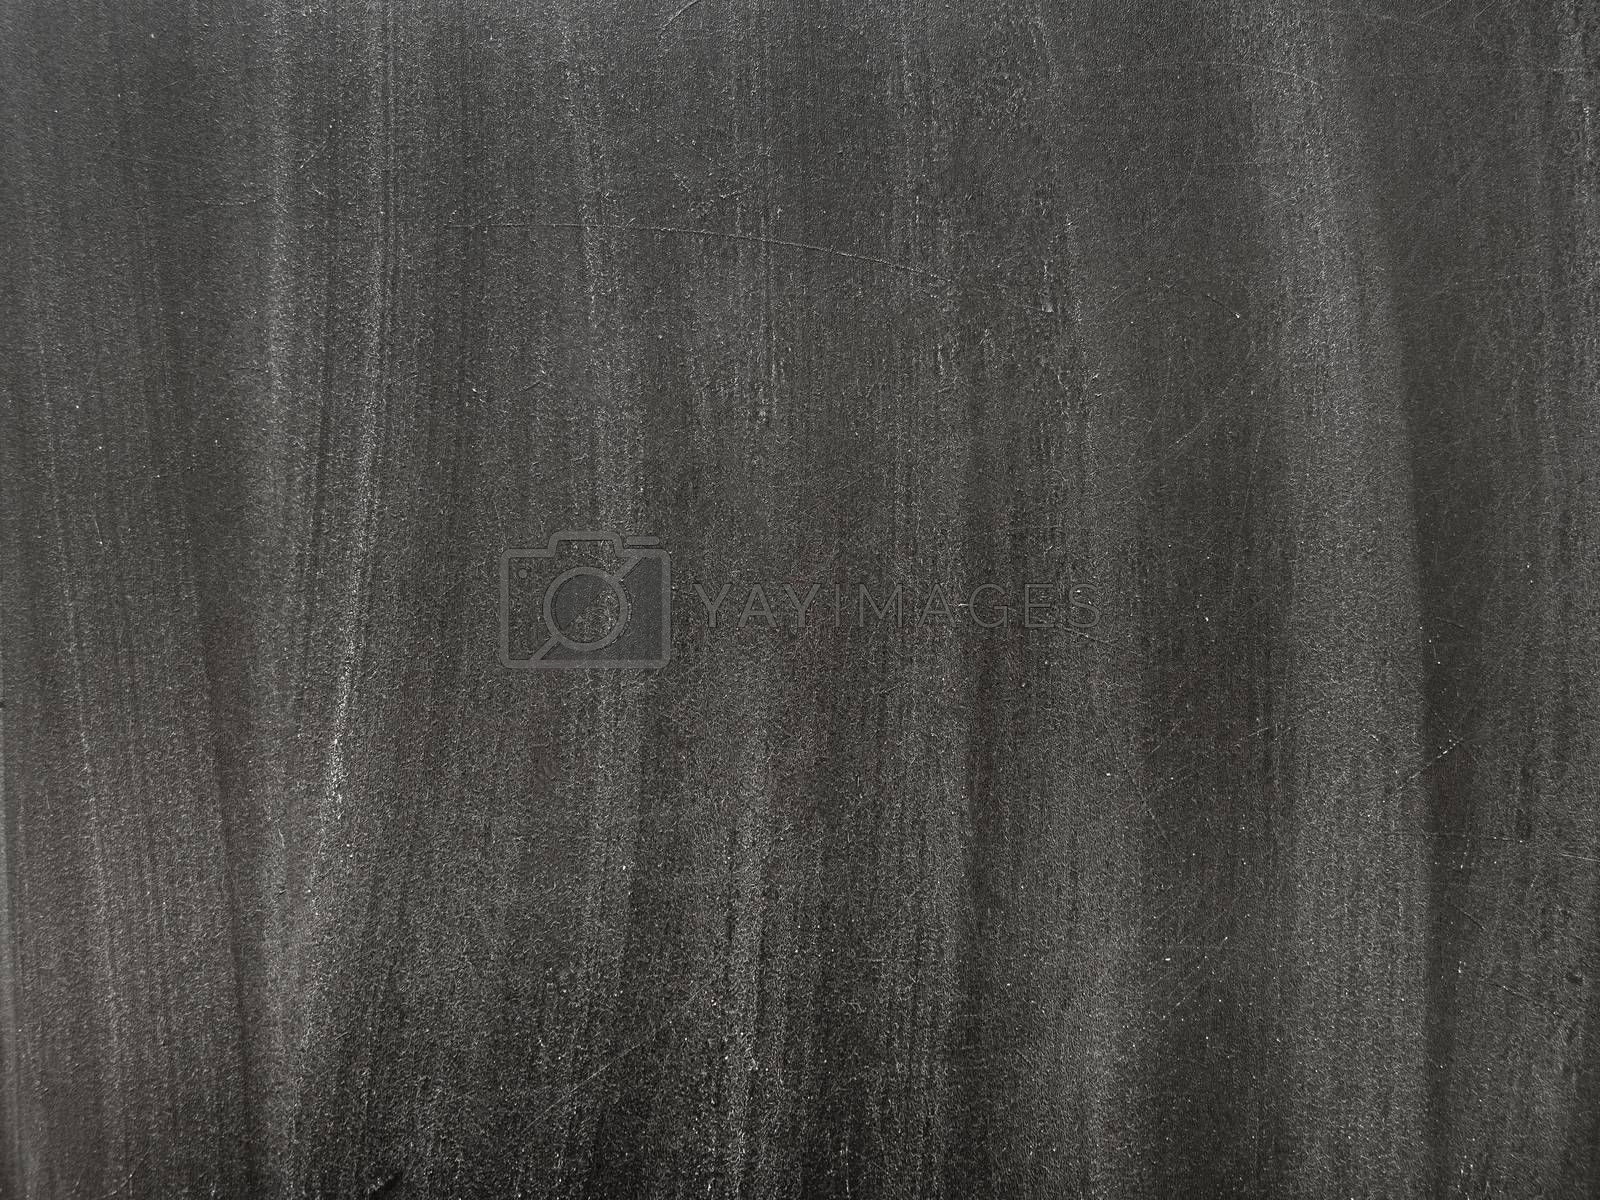 Texture of school blackboard with white chalk traces. Black dirty chalkboard. Background with copy space.